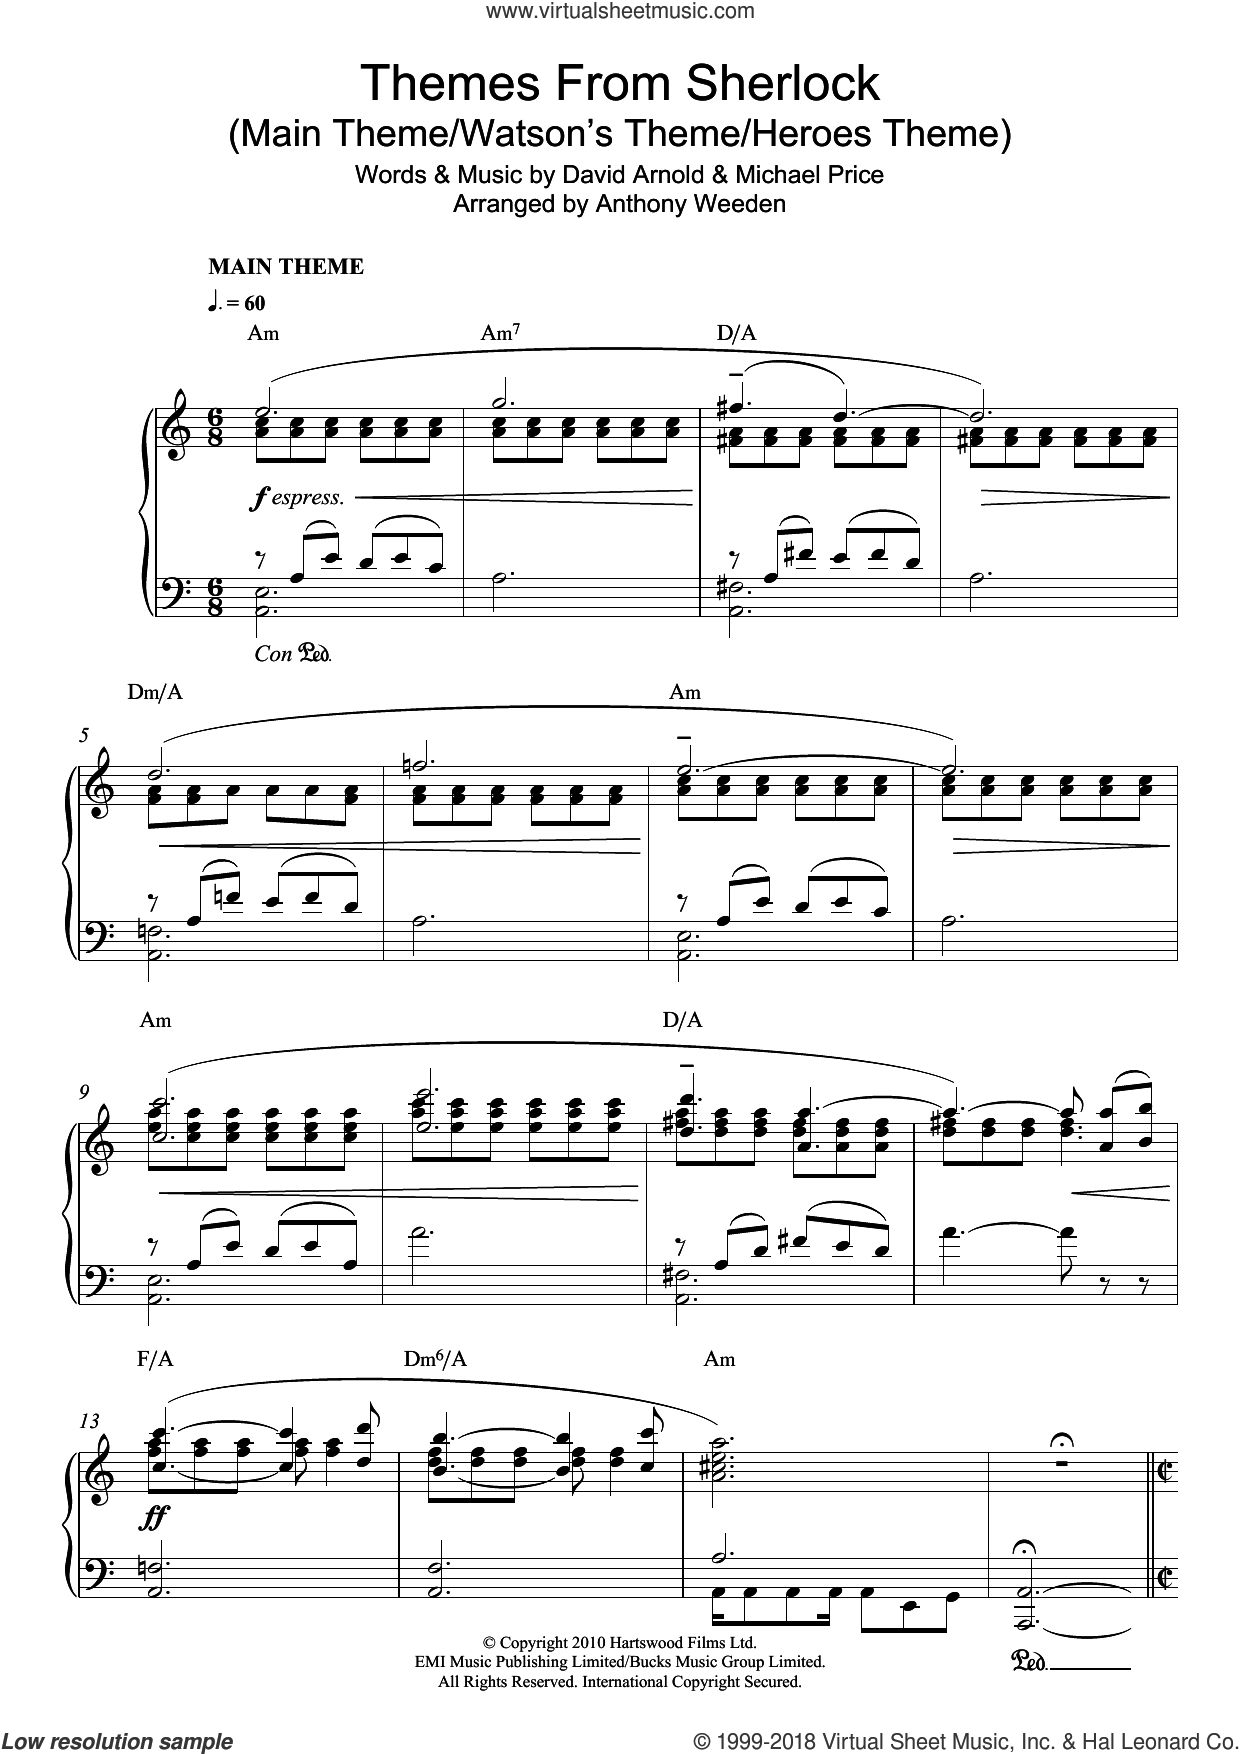 Themes From Sherlock (Main Theme/Watson's Theme/Heroes Theme) sheet music for piano solo by David Arnold and Michael Price, intermediate skill level